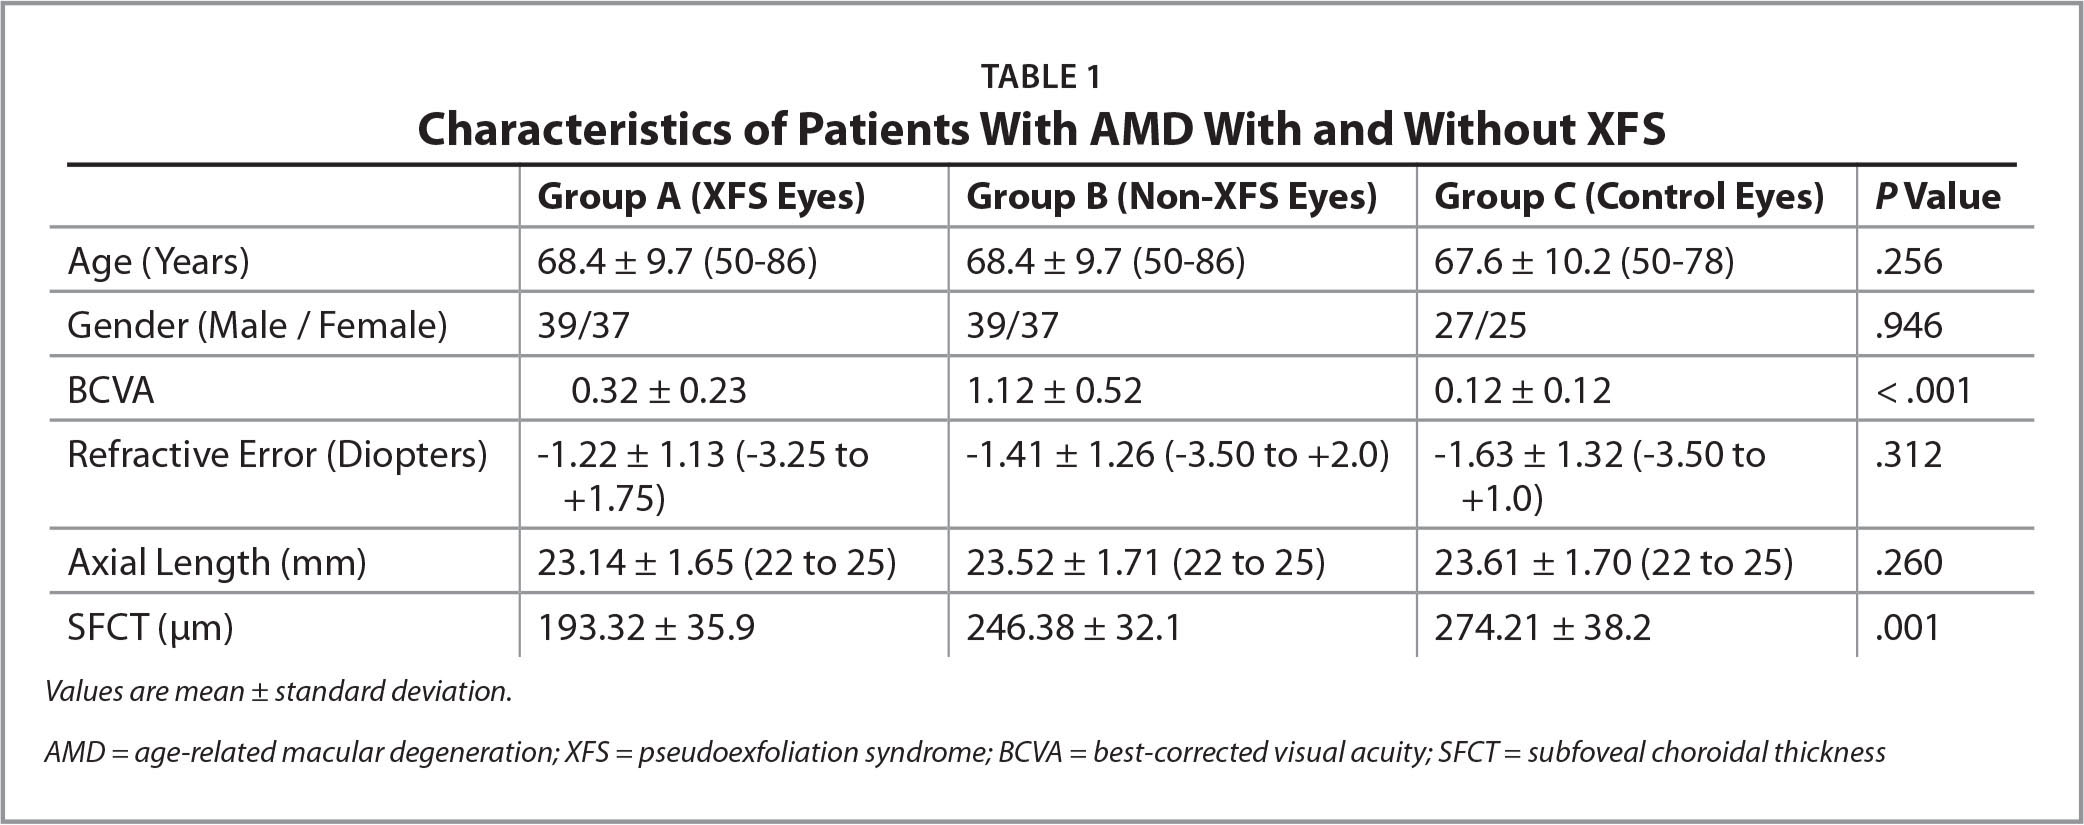 Characteristics of Patients With AMD With and Without XFS